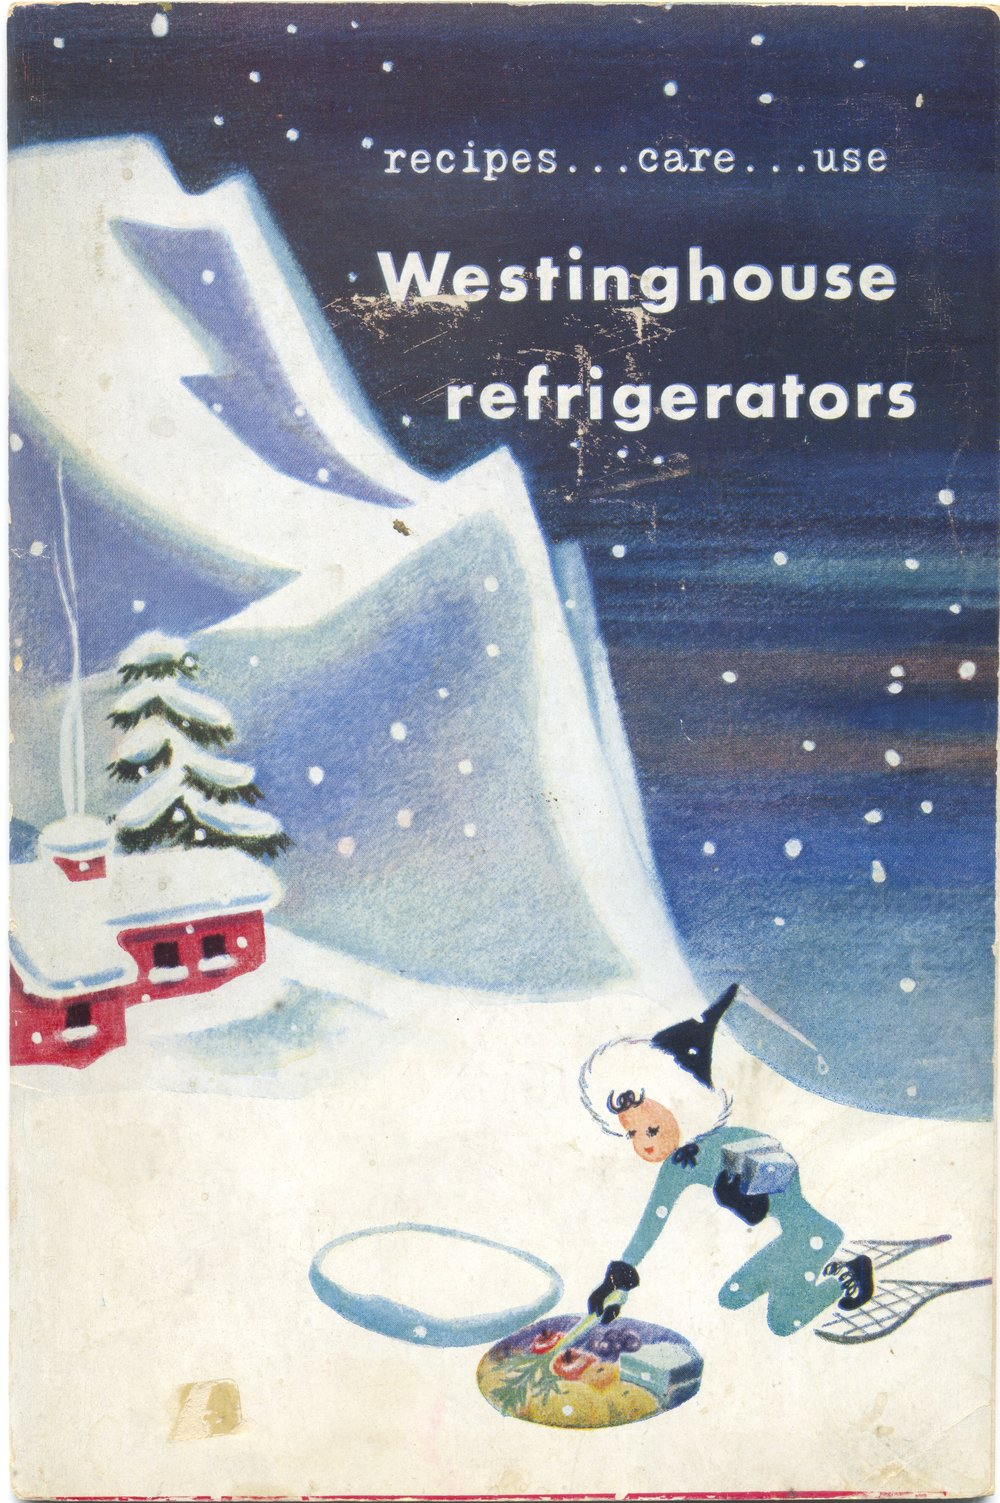 1948 Westinghouse refrigerator booklet ... love the illustration